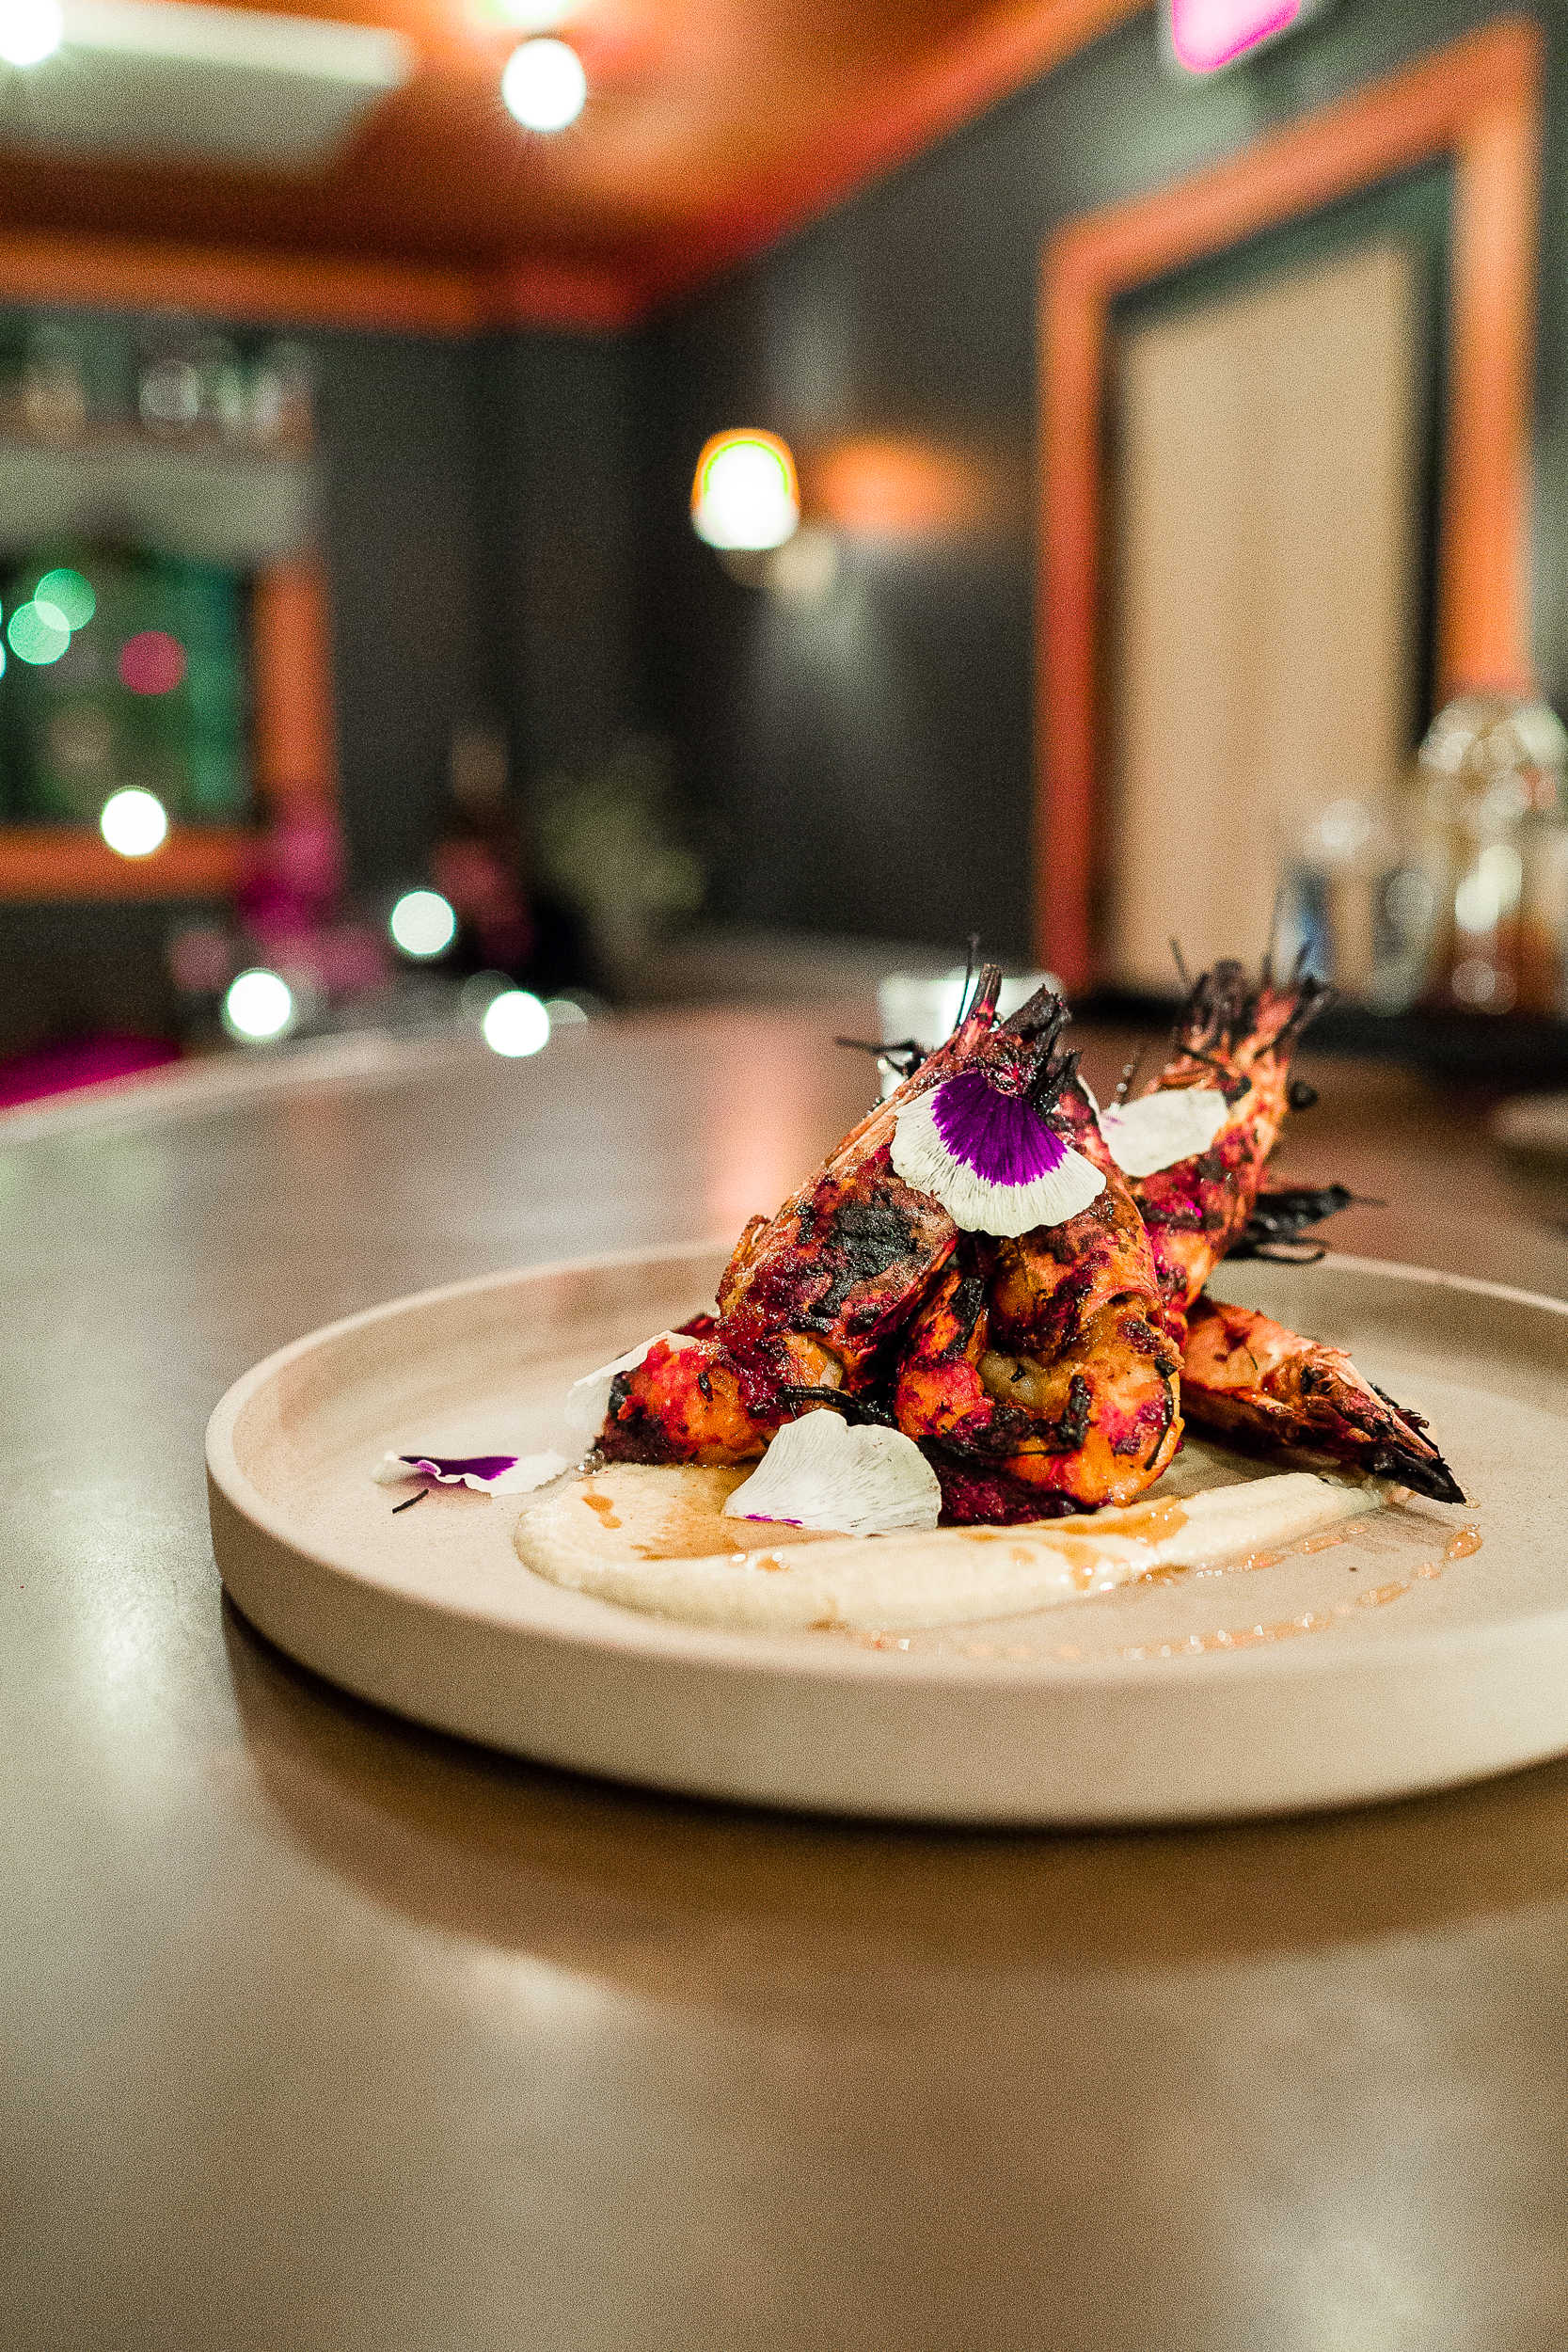 Head-on prawns with pistachio and harissa